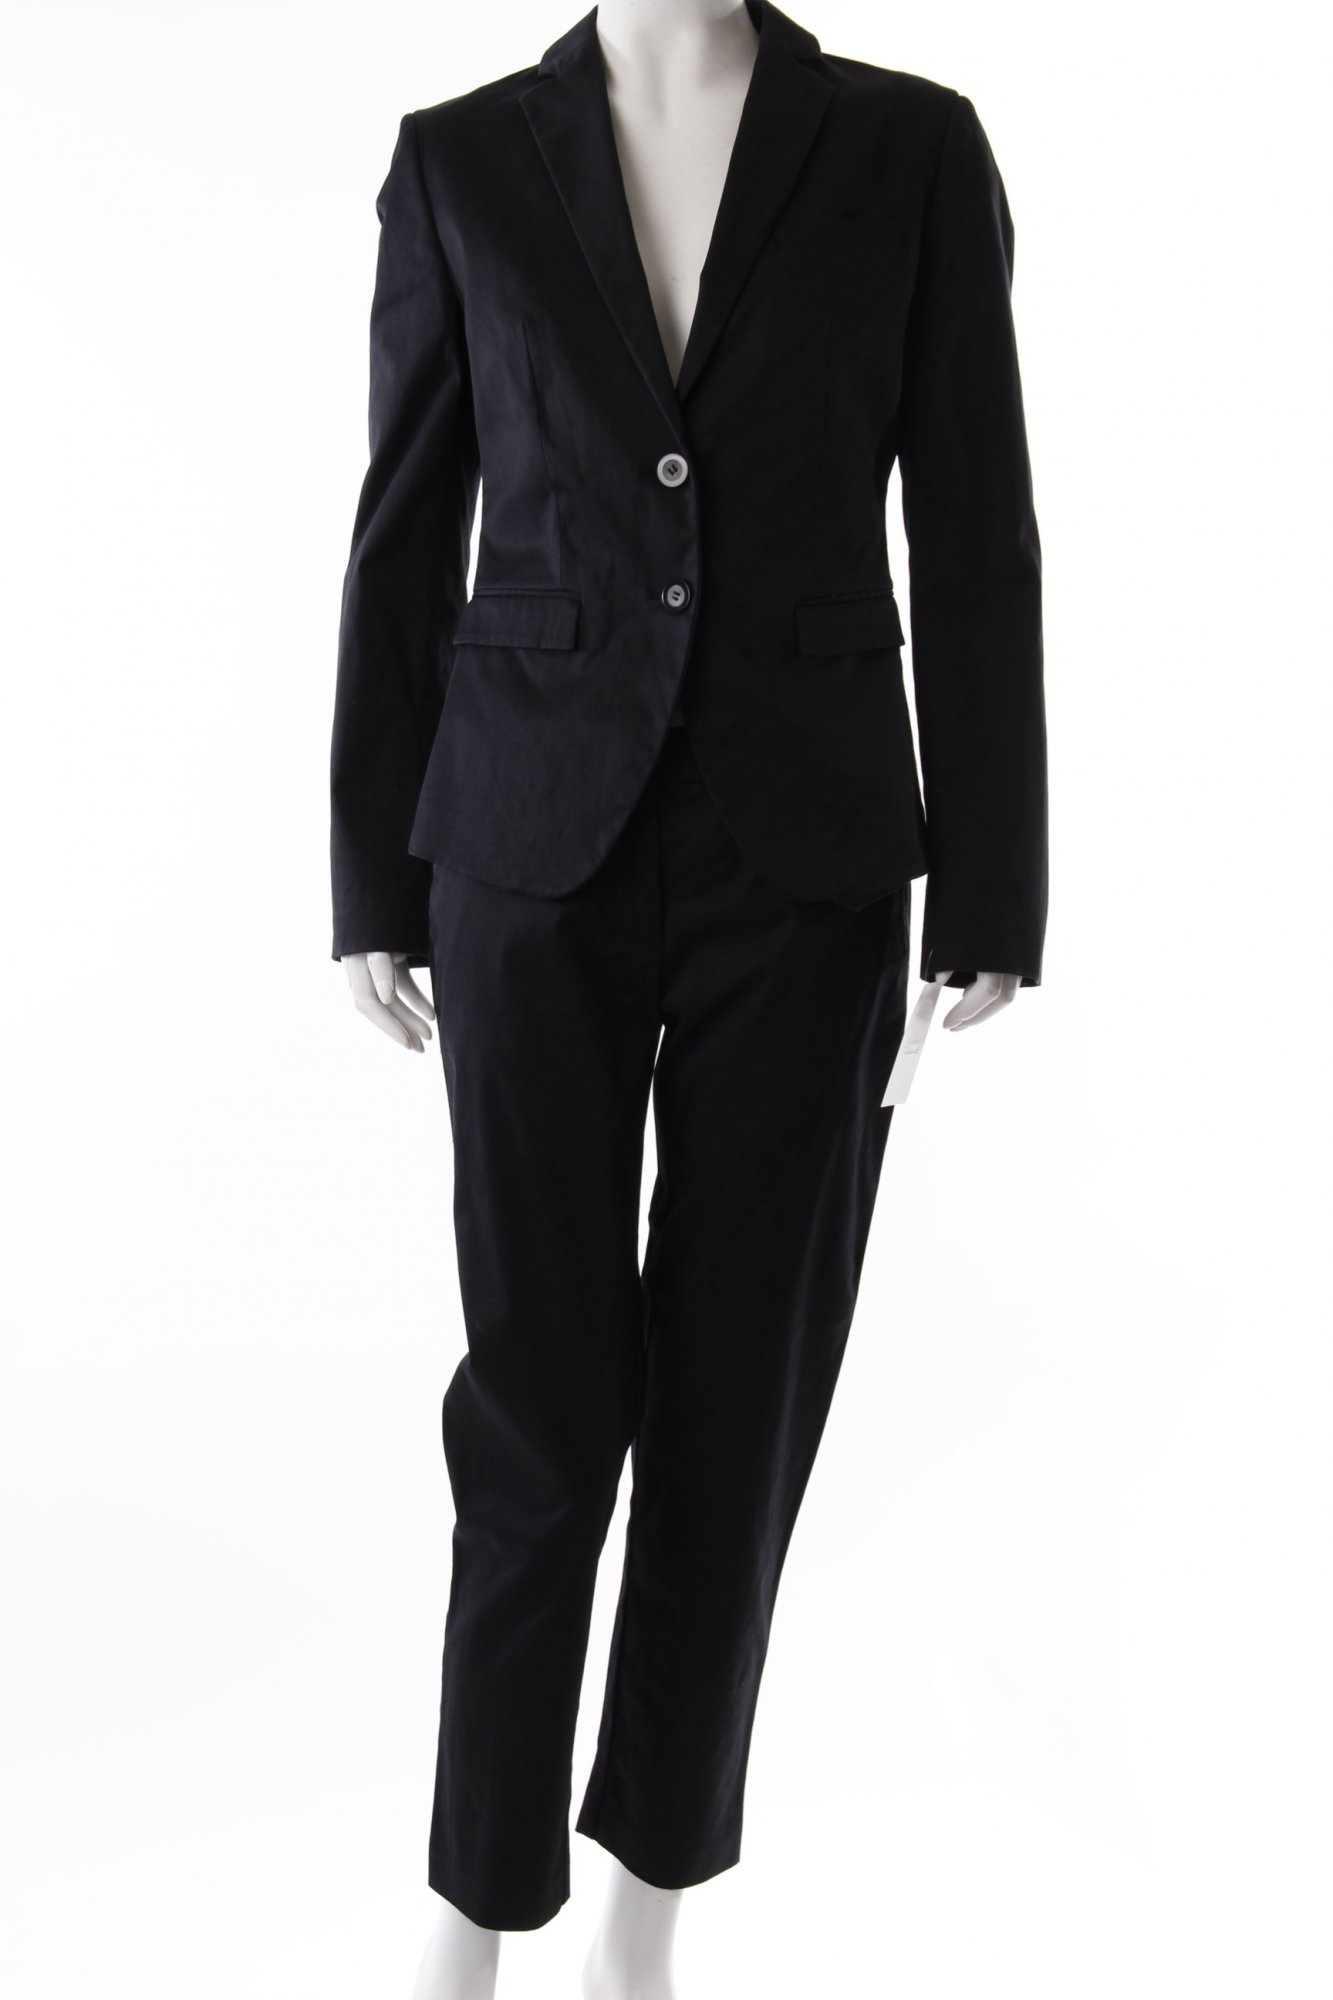 benetton hosenanzug schwarz damen gr de 38 anzug suit trouser suit ebay. Black Bedroom Furniture Sets. Home Design Ideas